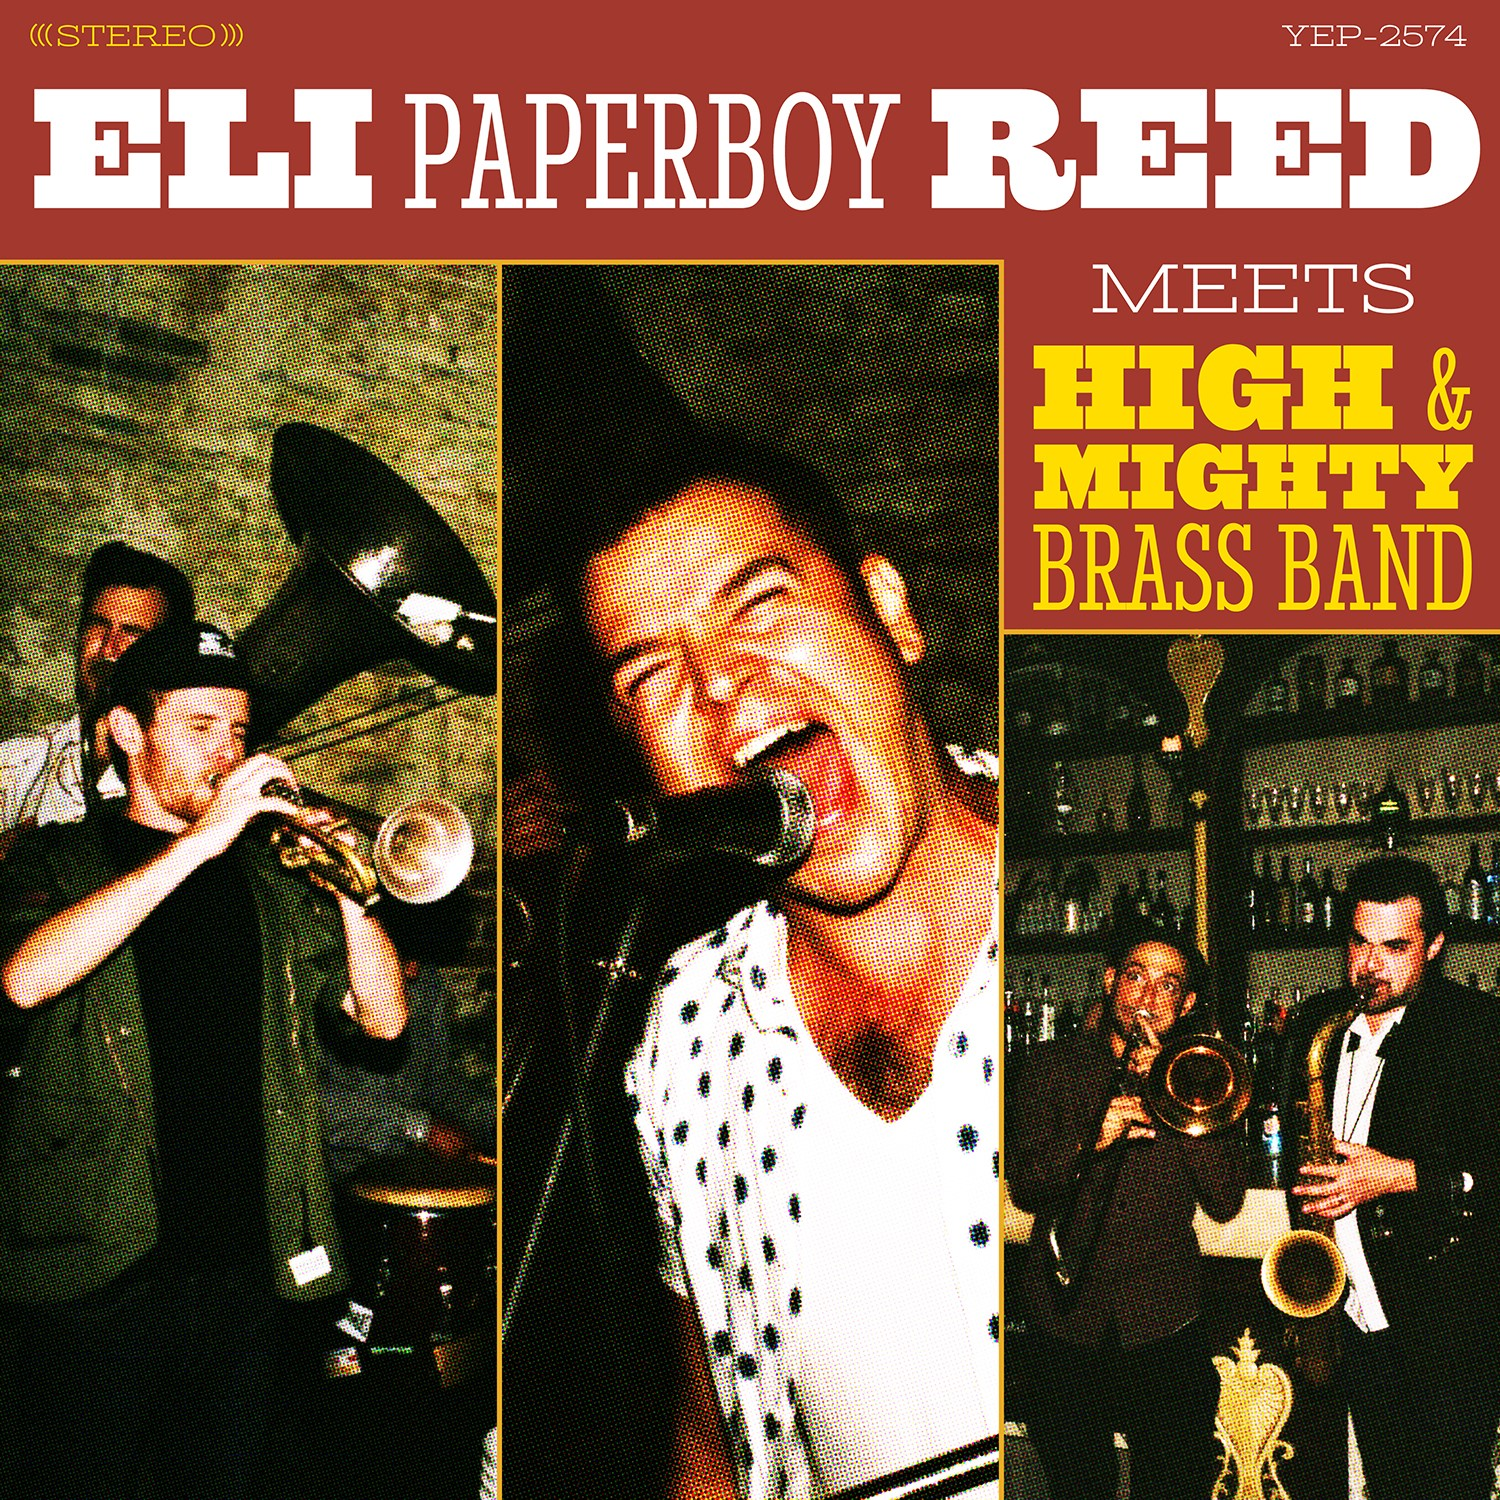 Eli 'Paperboy' Reed - Eli Paperboy Reed Meets High & Mighty Brass Band